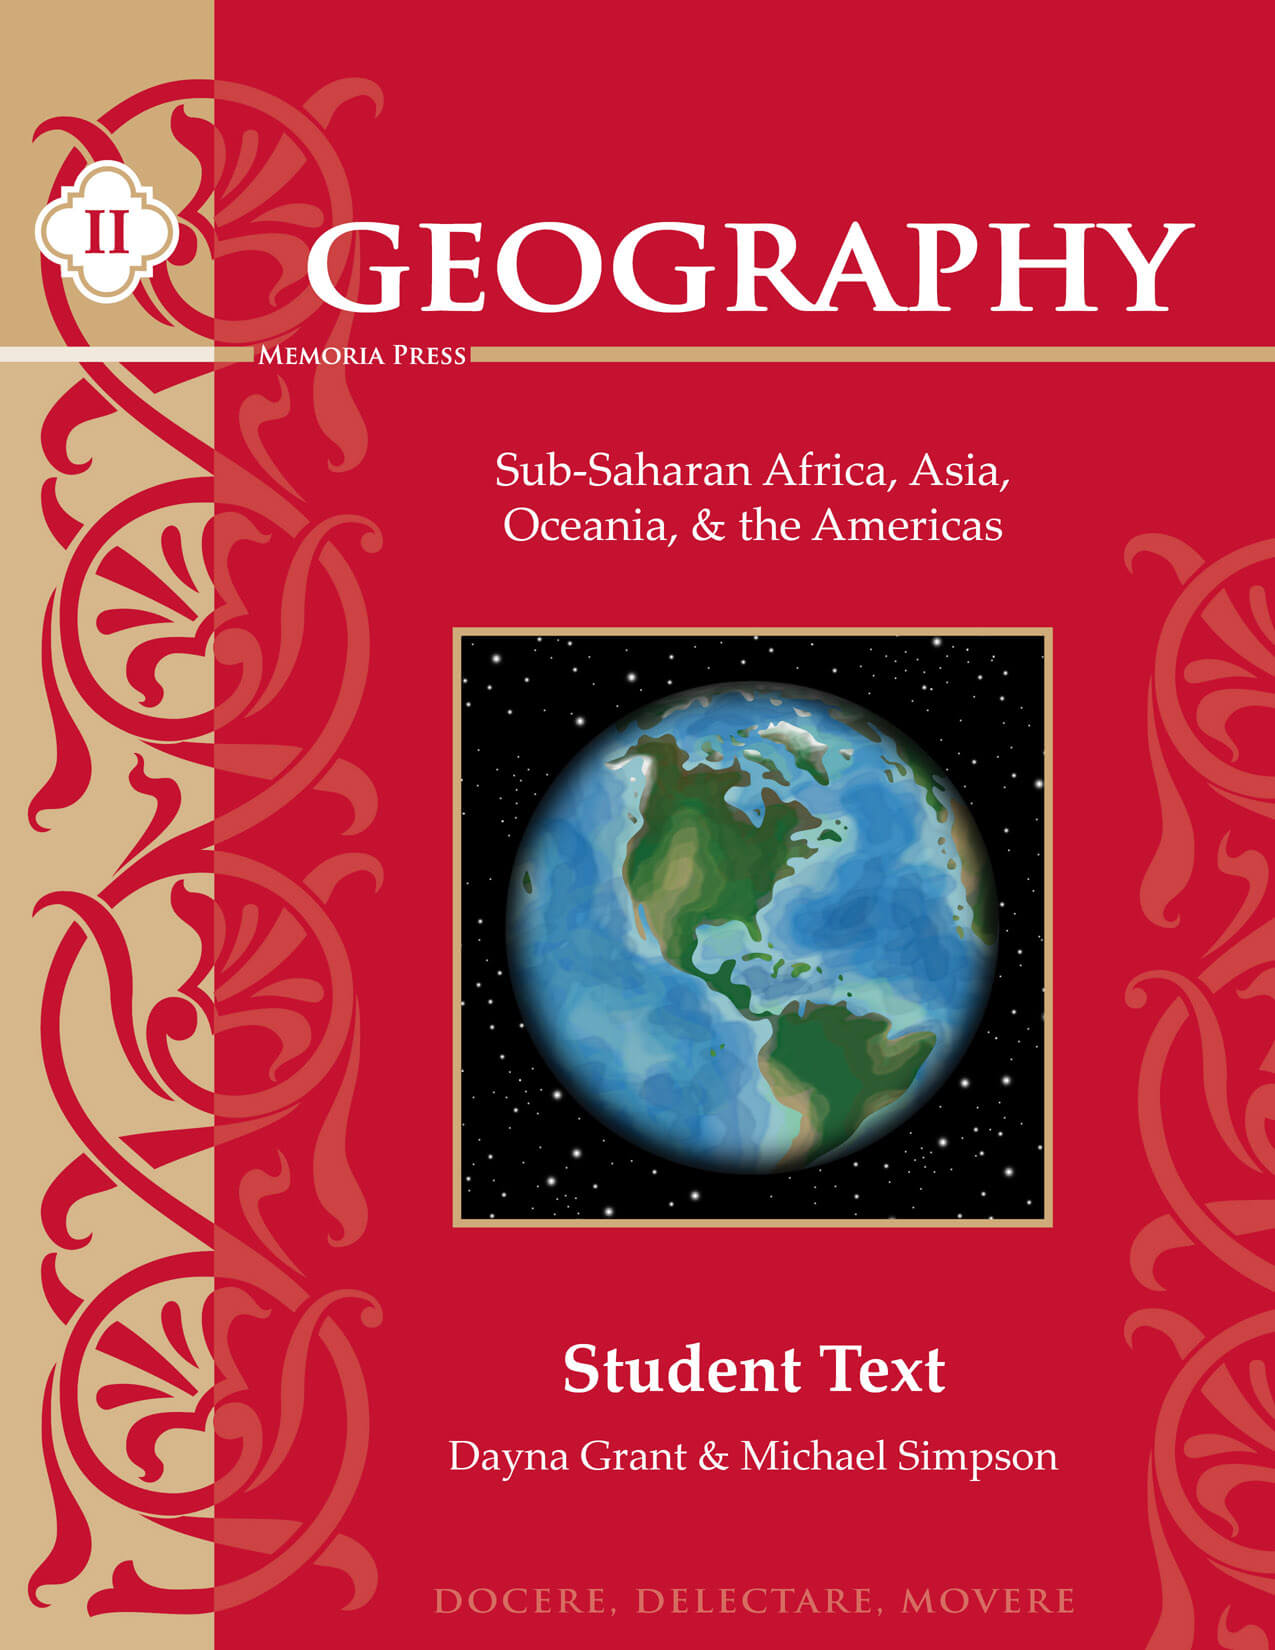 Geography II: Sub-Saharan Africa, Asia, Oceania, & the Americas